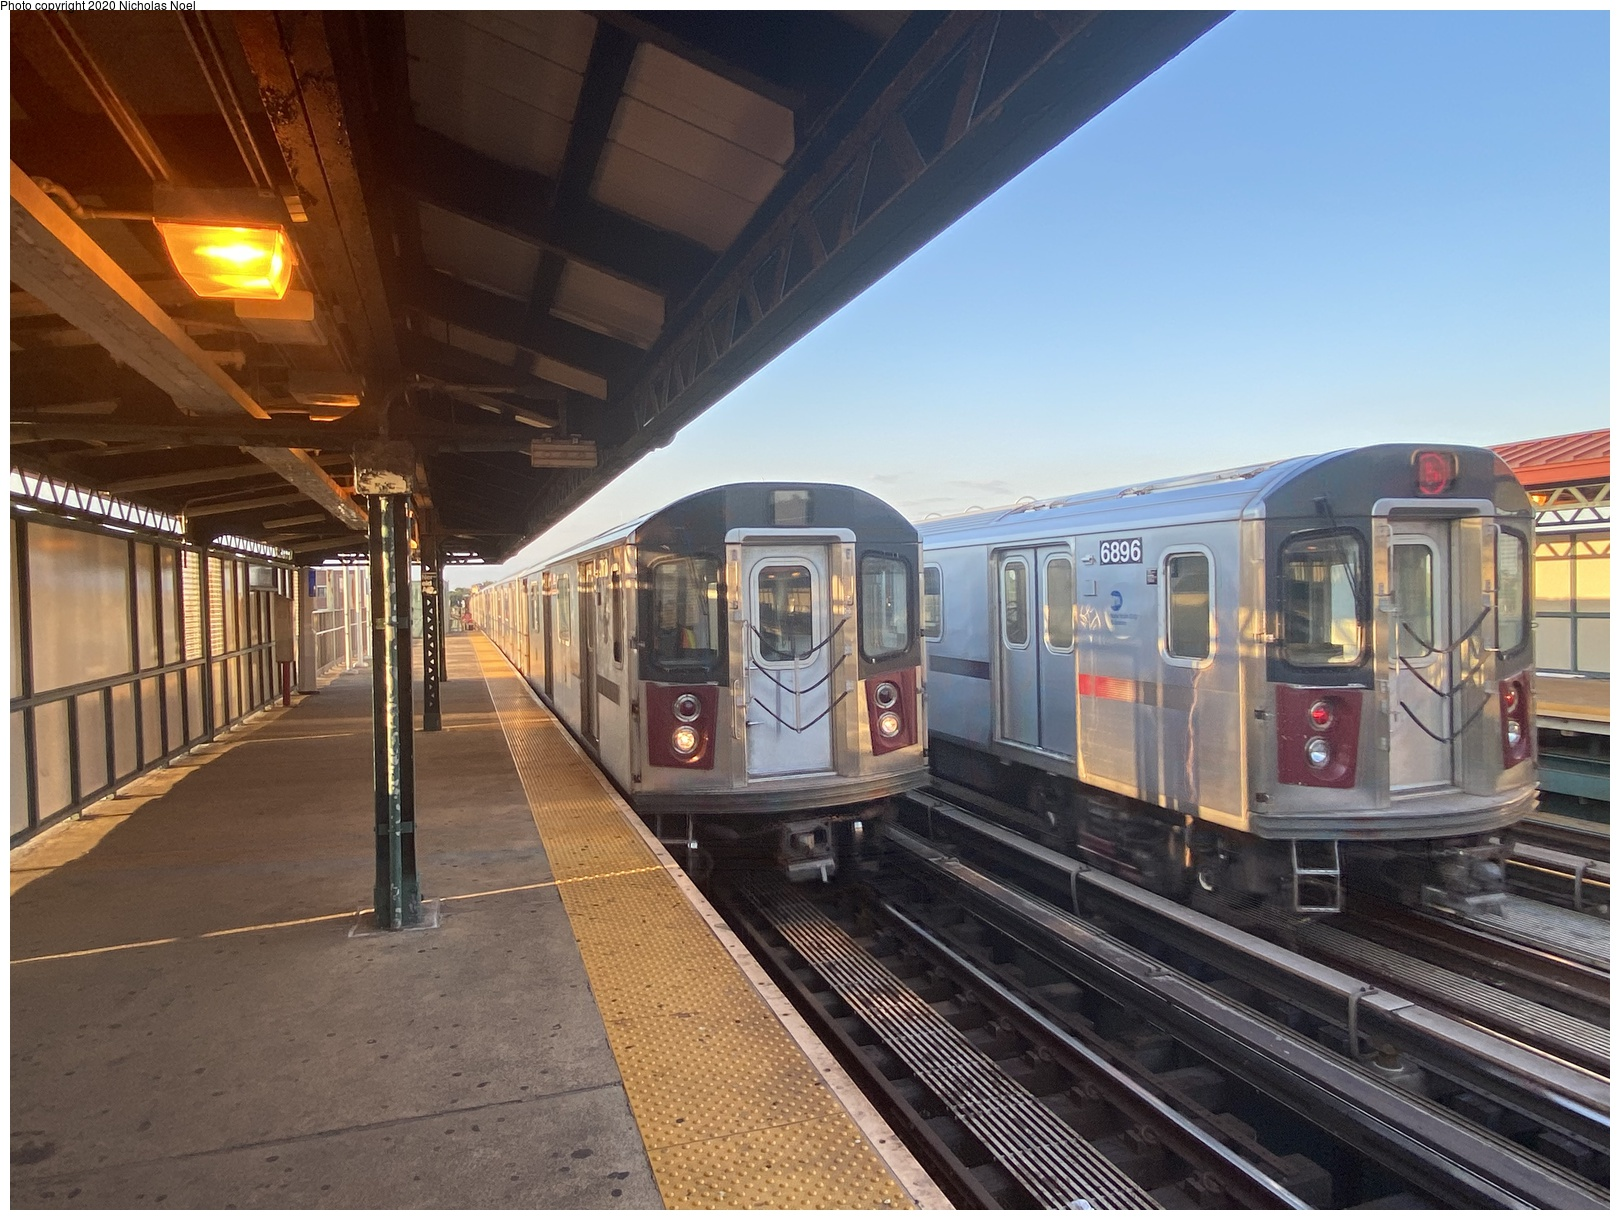 (357k, 1044x787)<br><b>Country:</b> United States<br><b>City:</b> New York<br><b>System:</b> New York City Transit<br><b>Line:</b> BMT Myrtle Avenue Line<br><b>Location:</b> Metropolitan Avenue <br><b>Car:</b> BMT Elevated Gate Car  <br><b>Photo by:</b> Joel Shanus<br><b>Viewed (this week/total):</b> 0 / 1446